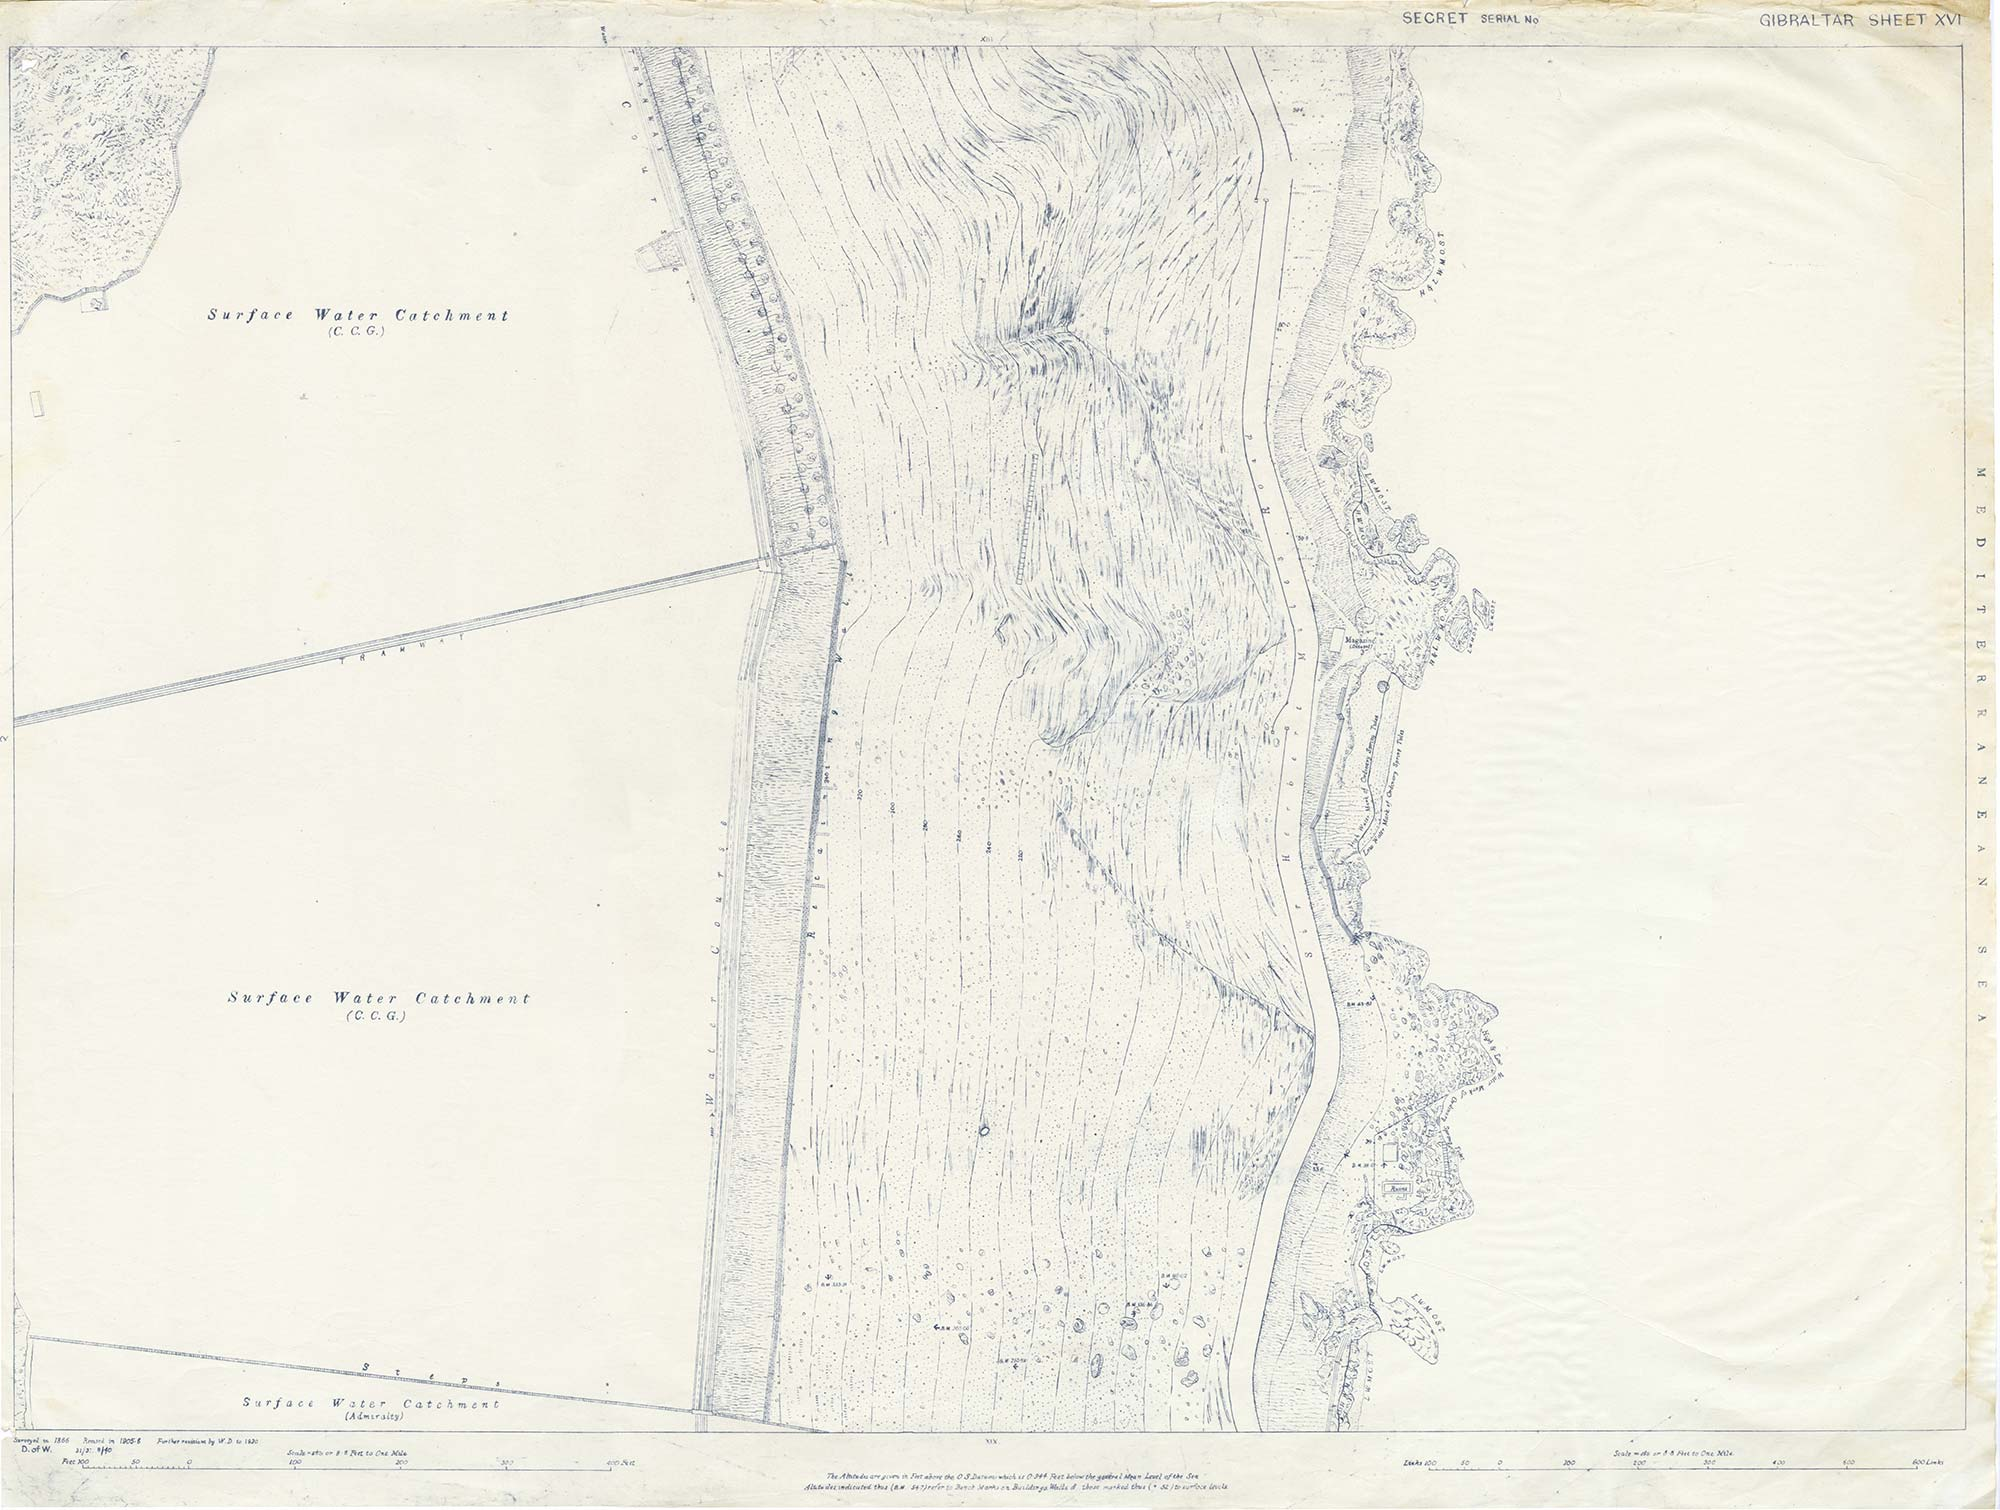 Map-10-OS-Sheet-16-Water-Catchment-1930